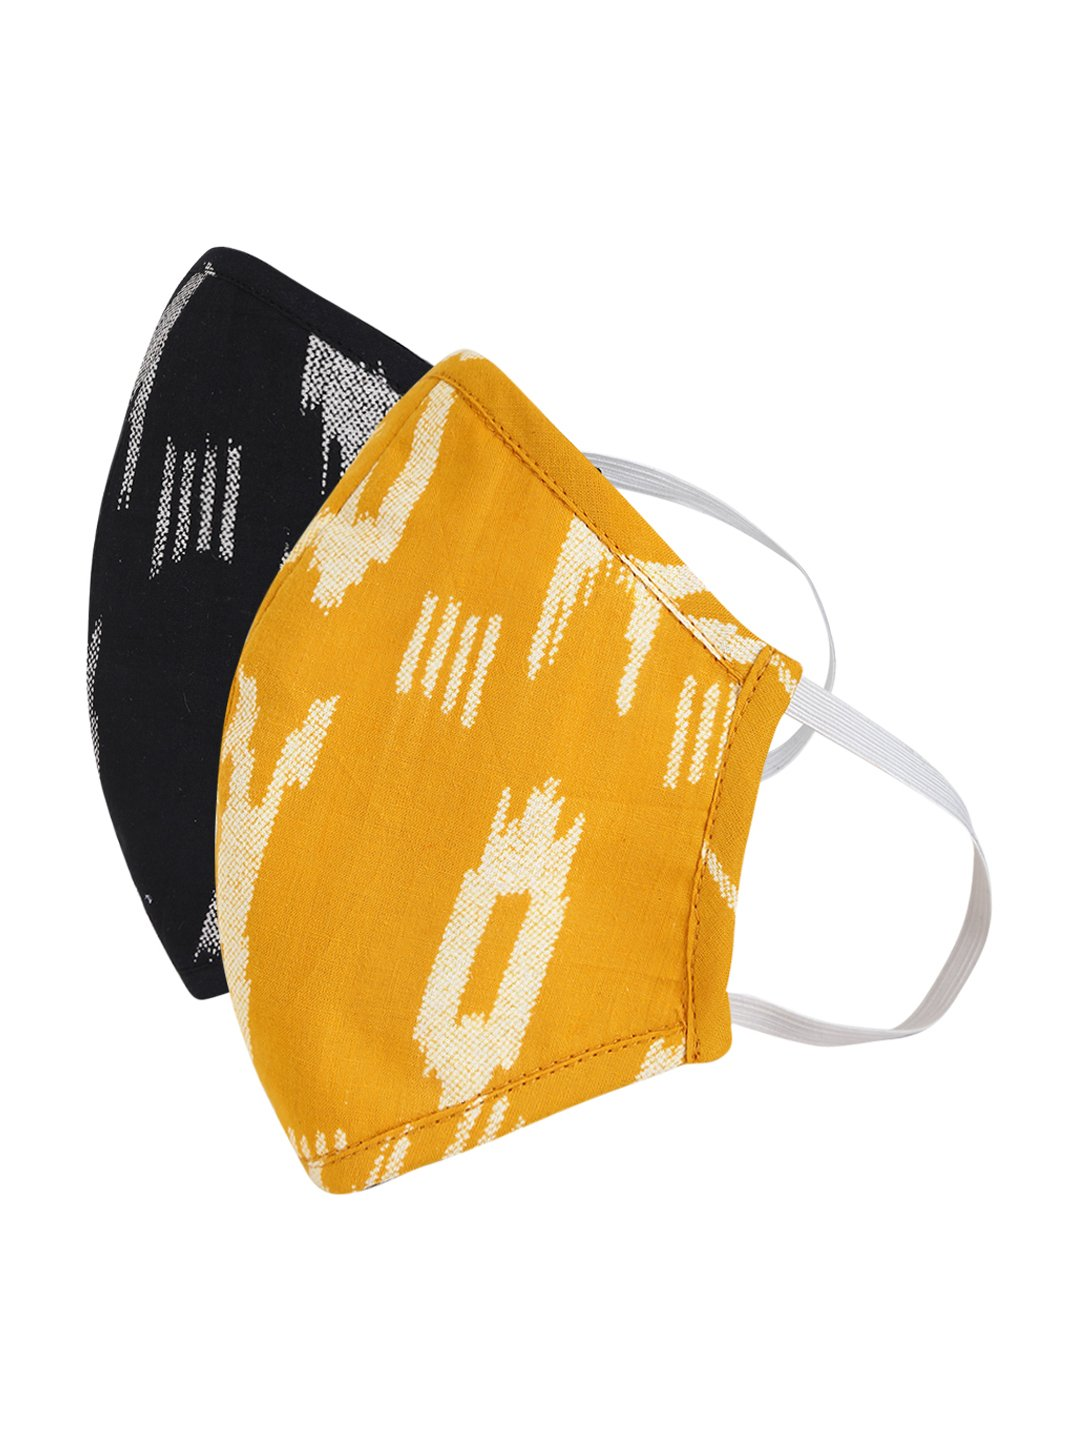 Fabnest | Fabnest Womens Yellow And Black Ikkat Face Masks Pack Of 2